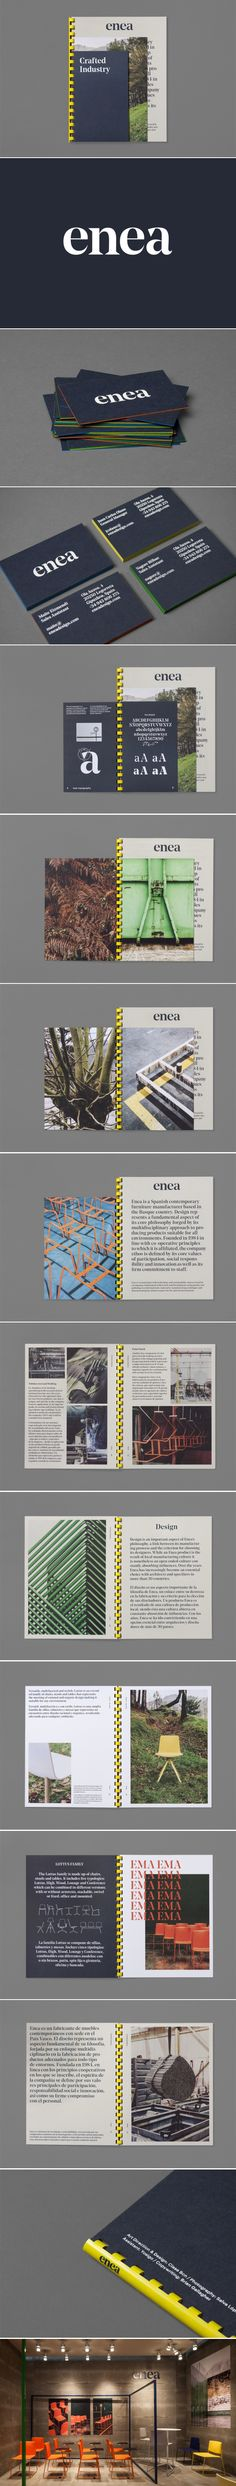 New Logo for Enea by Clase bcn — BP&O - created Map Layout, Print Layout, Layout Design, Print Design, Web Design, Graphic Design, Editorial Design, Editorial Layout, Brochure Inspiration